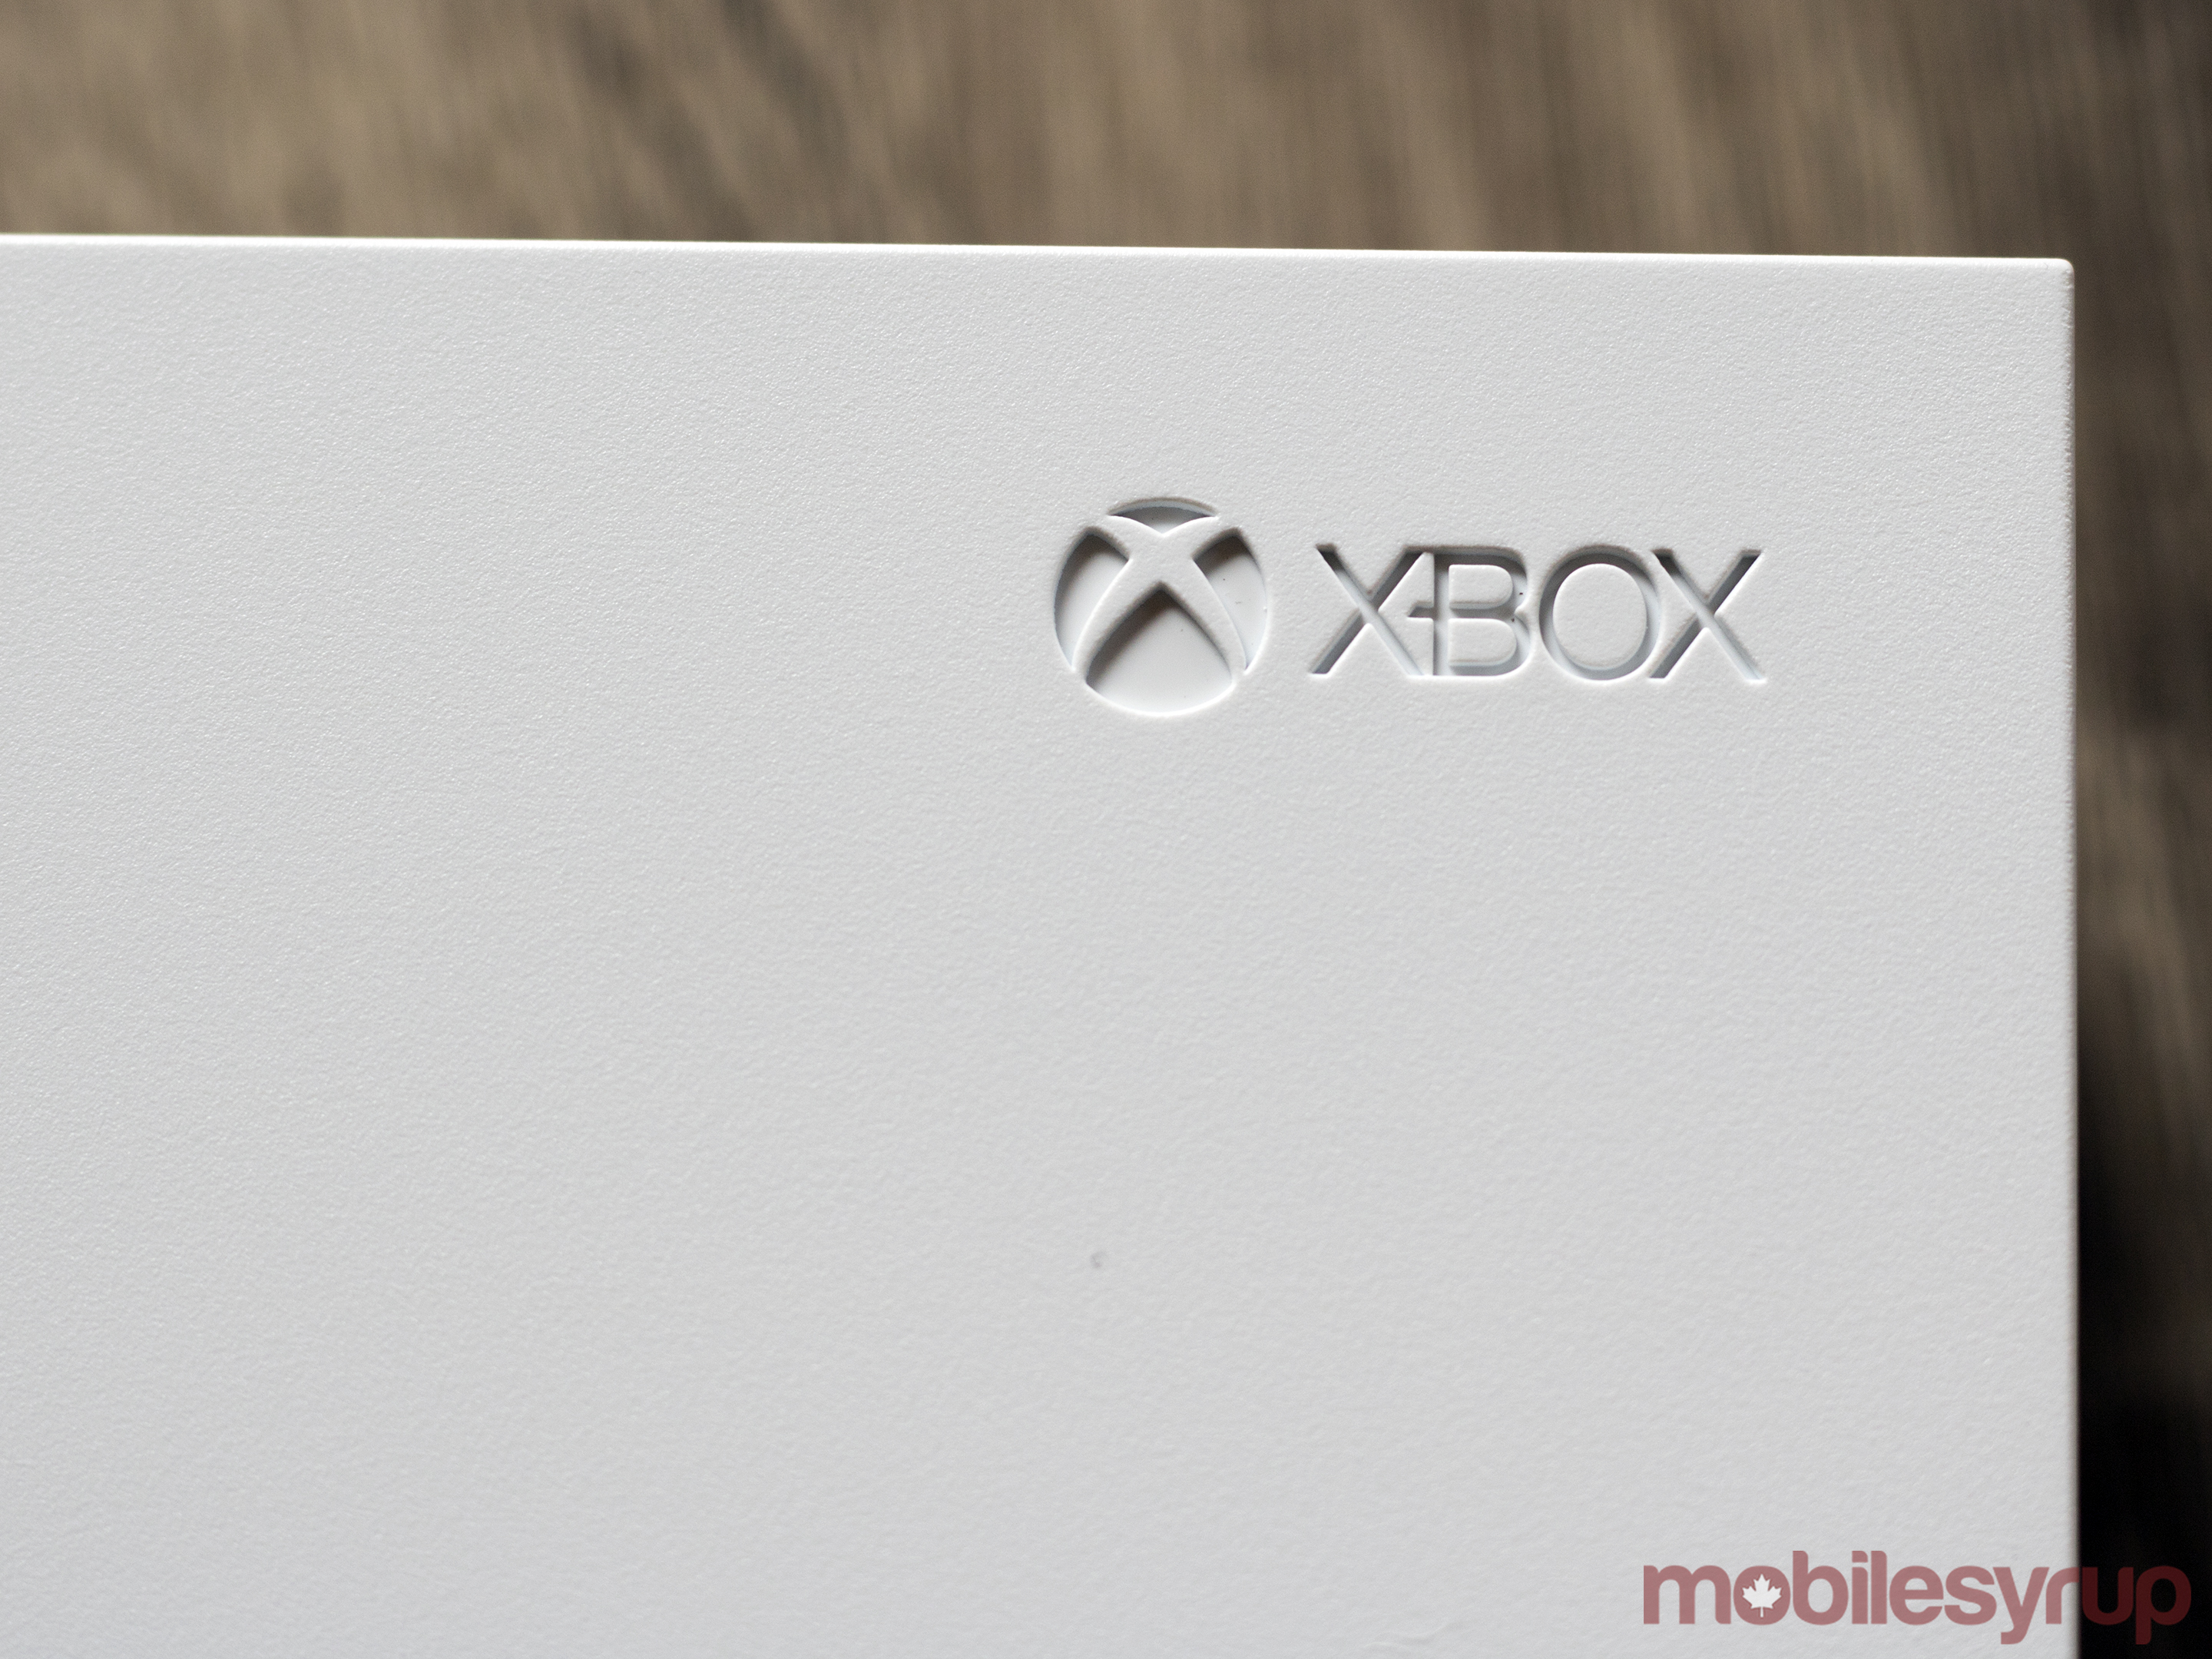 An in-depth look at Microsoft's slimmer, 4K-capable Xbox One